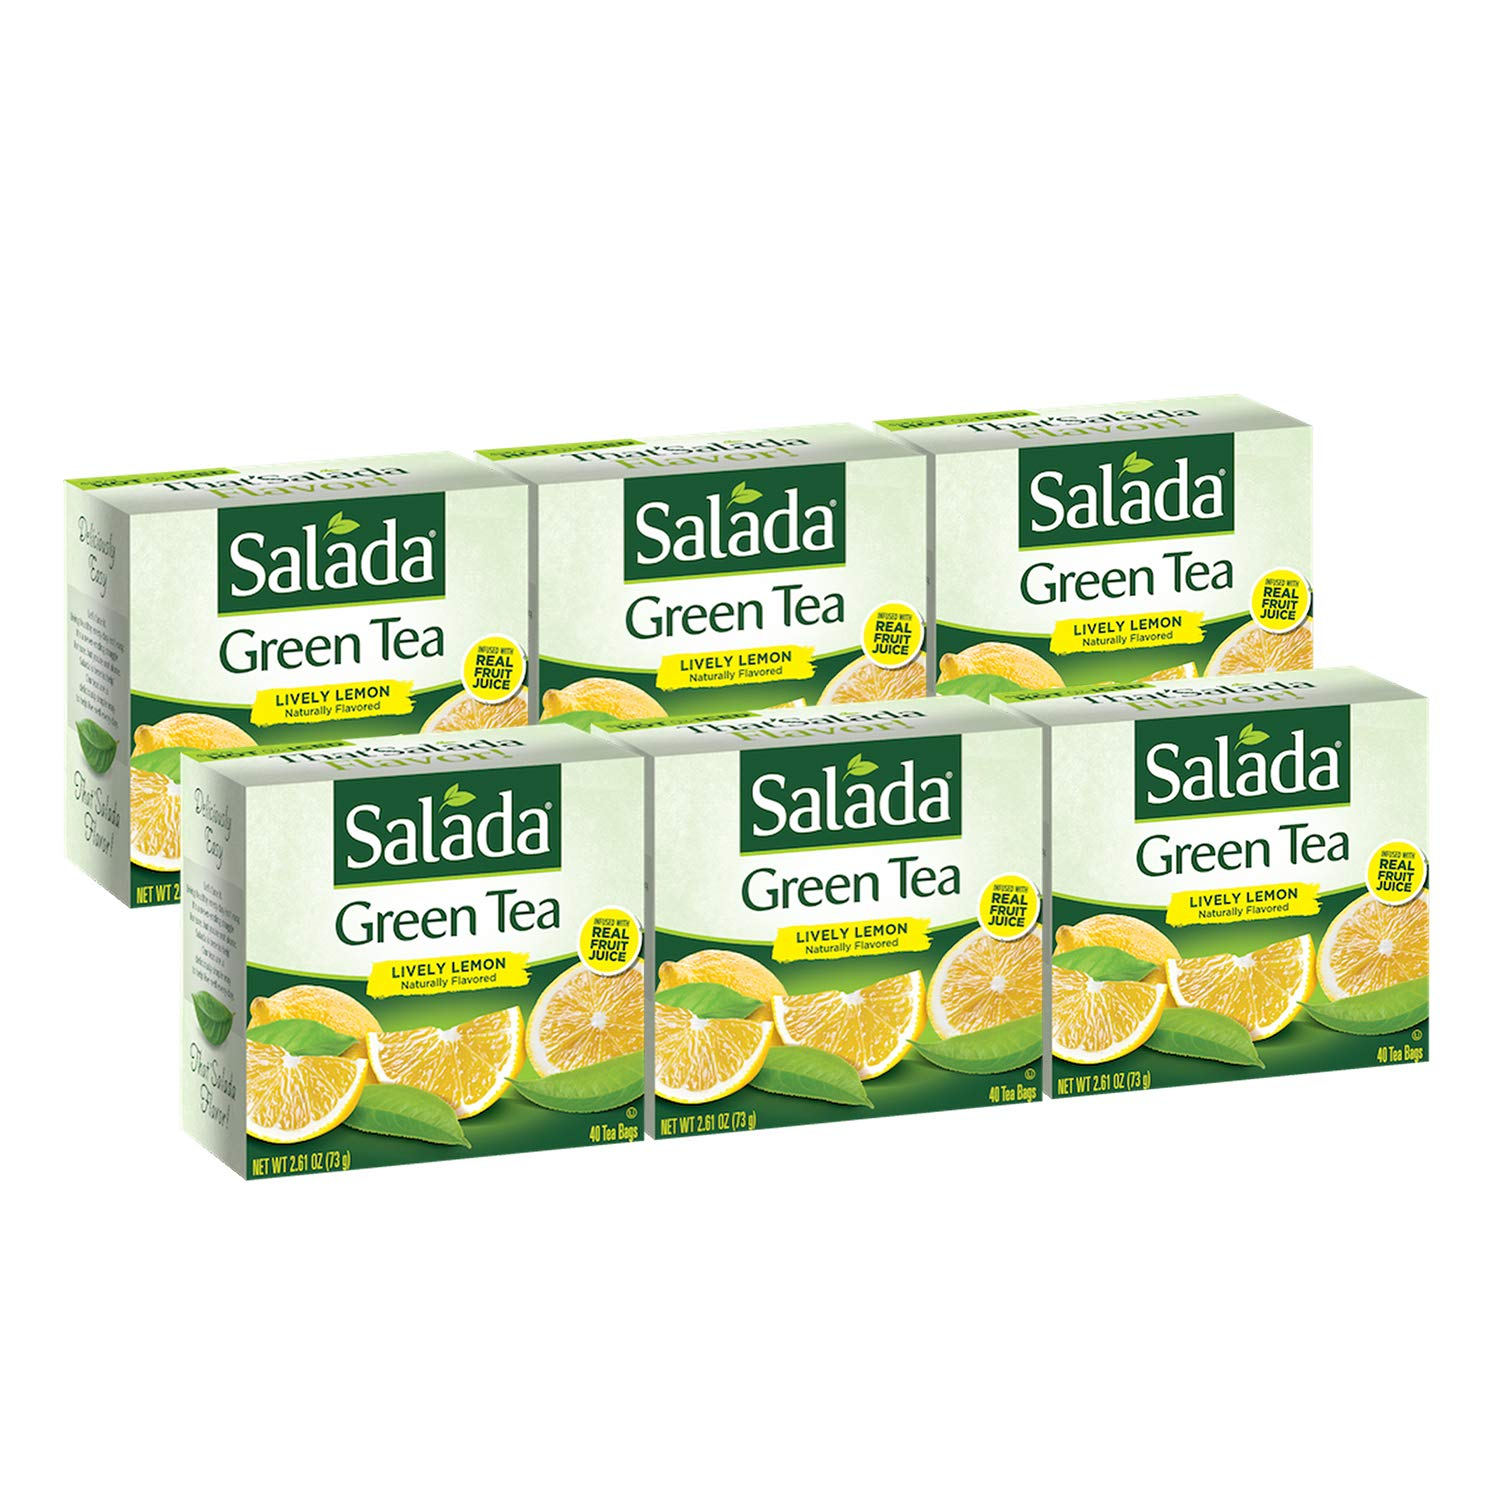 Salada Lively Lemon Green Tea, 240 Individually Wrapped Tea Bags (Pack of 6)